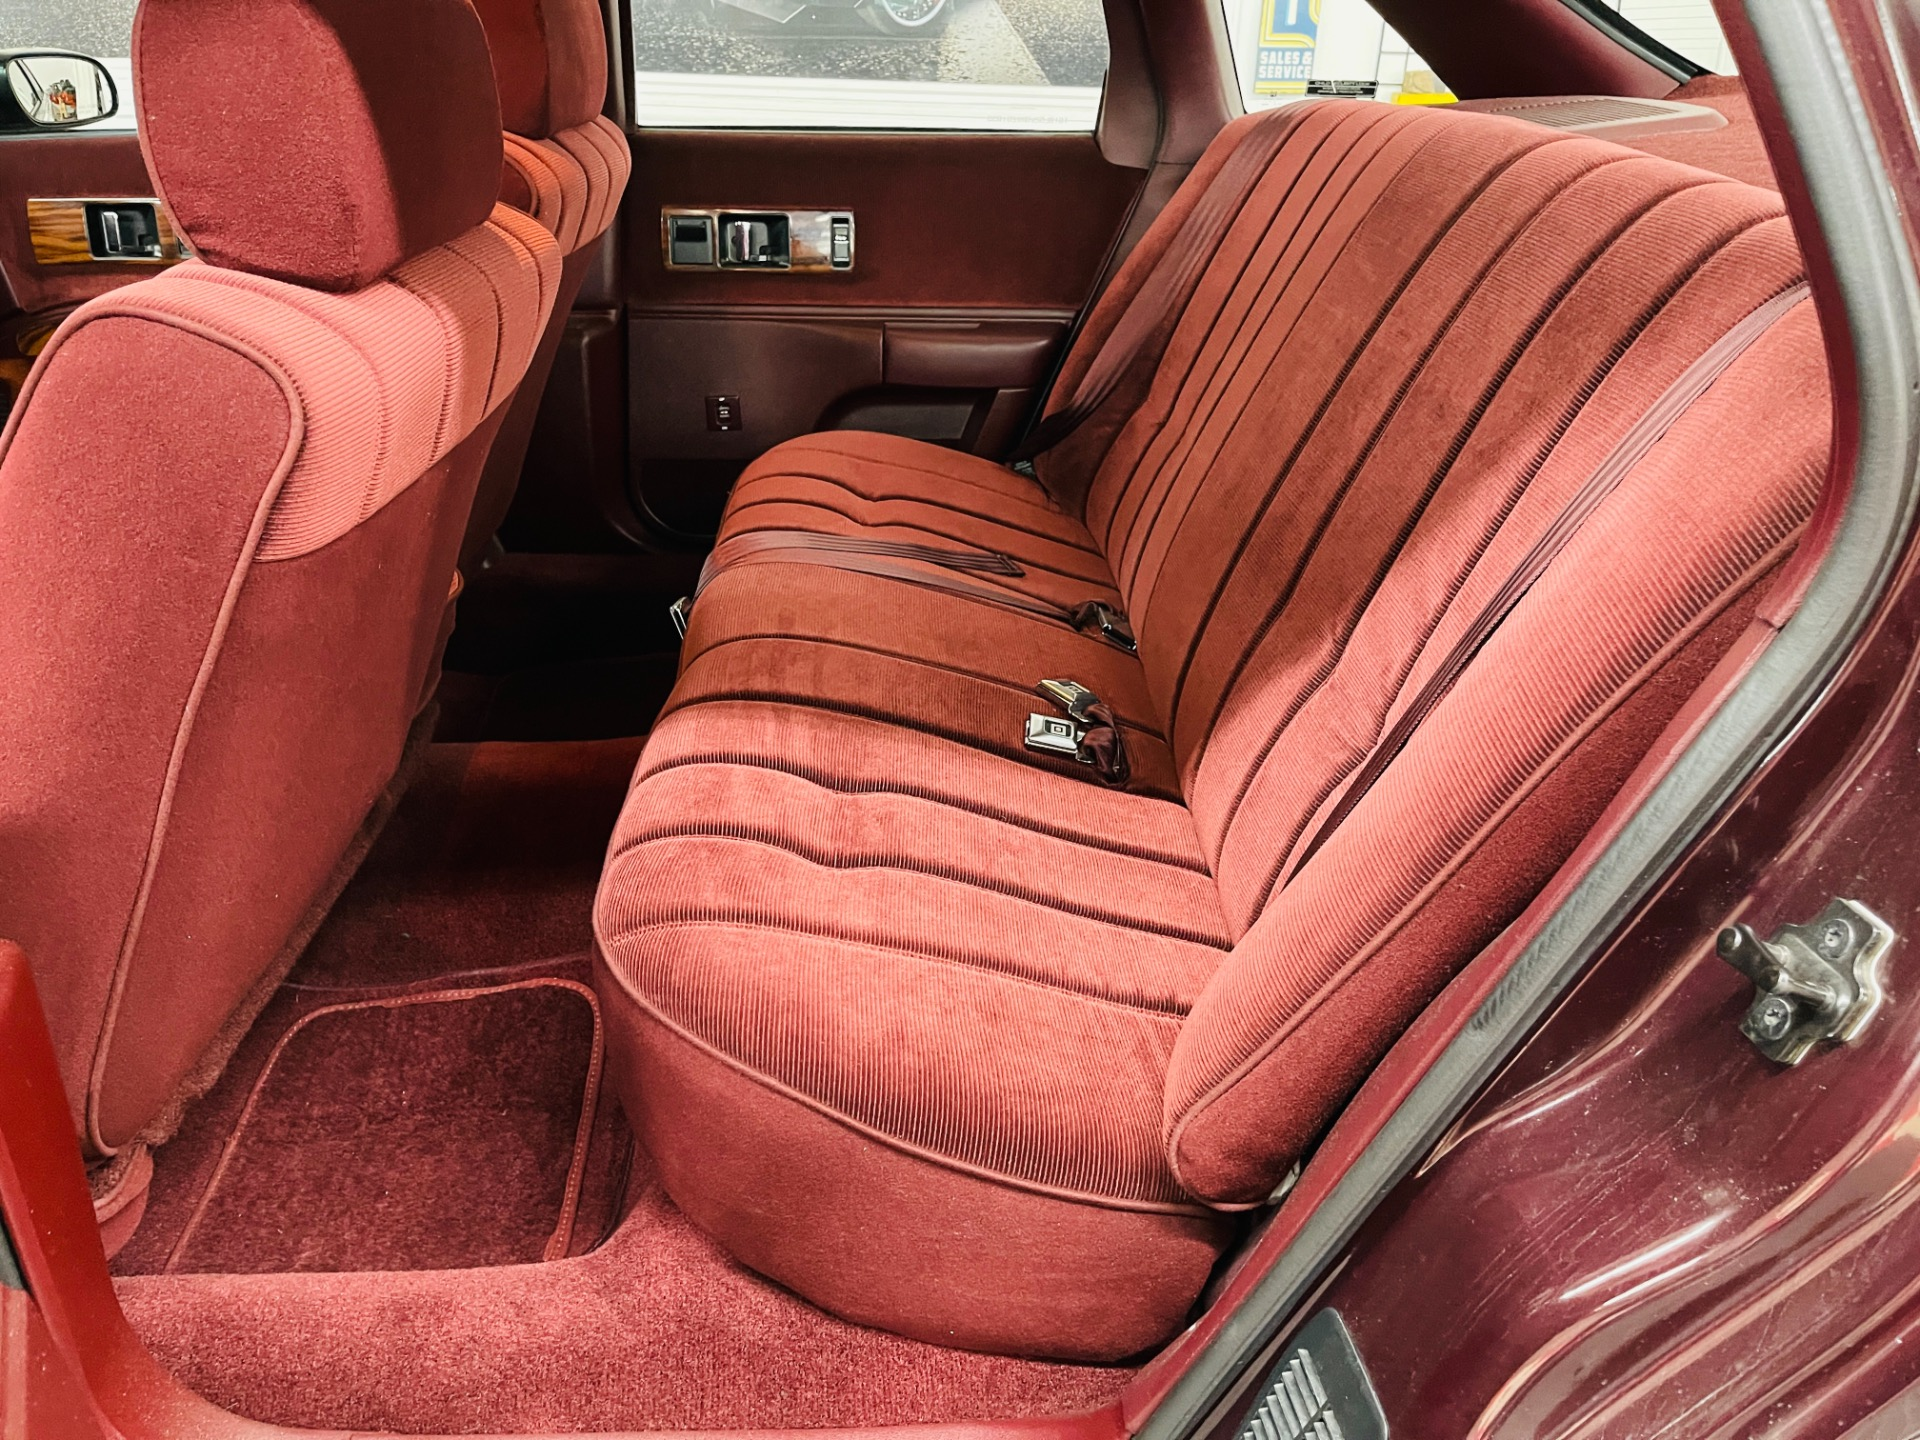 Used 1994 Chevrolet Caprice - ONE FAMILY OWNED SINCE NEW - LIKE NEW CONDITION - SEE VIDEO -   Mundelein, IL